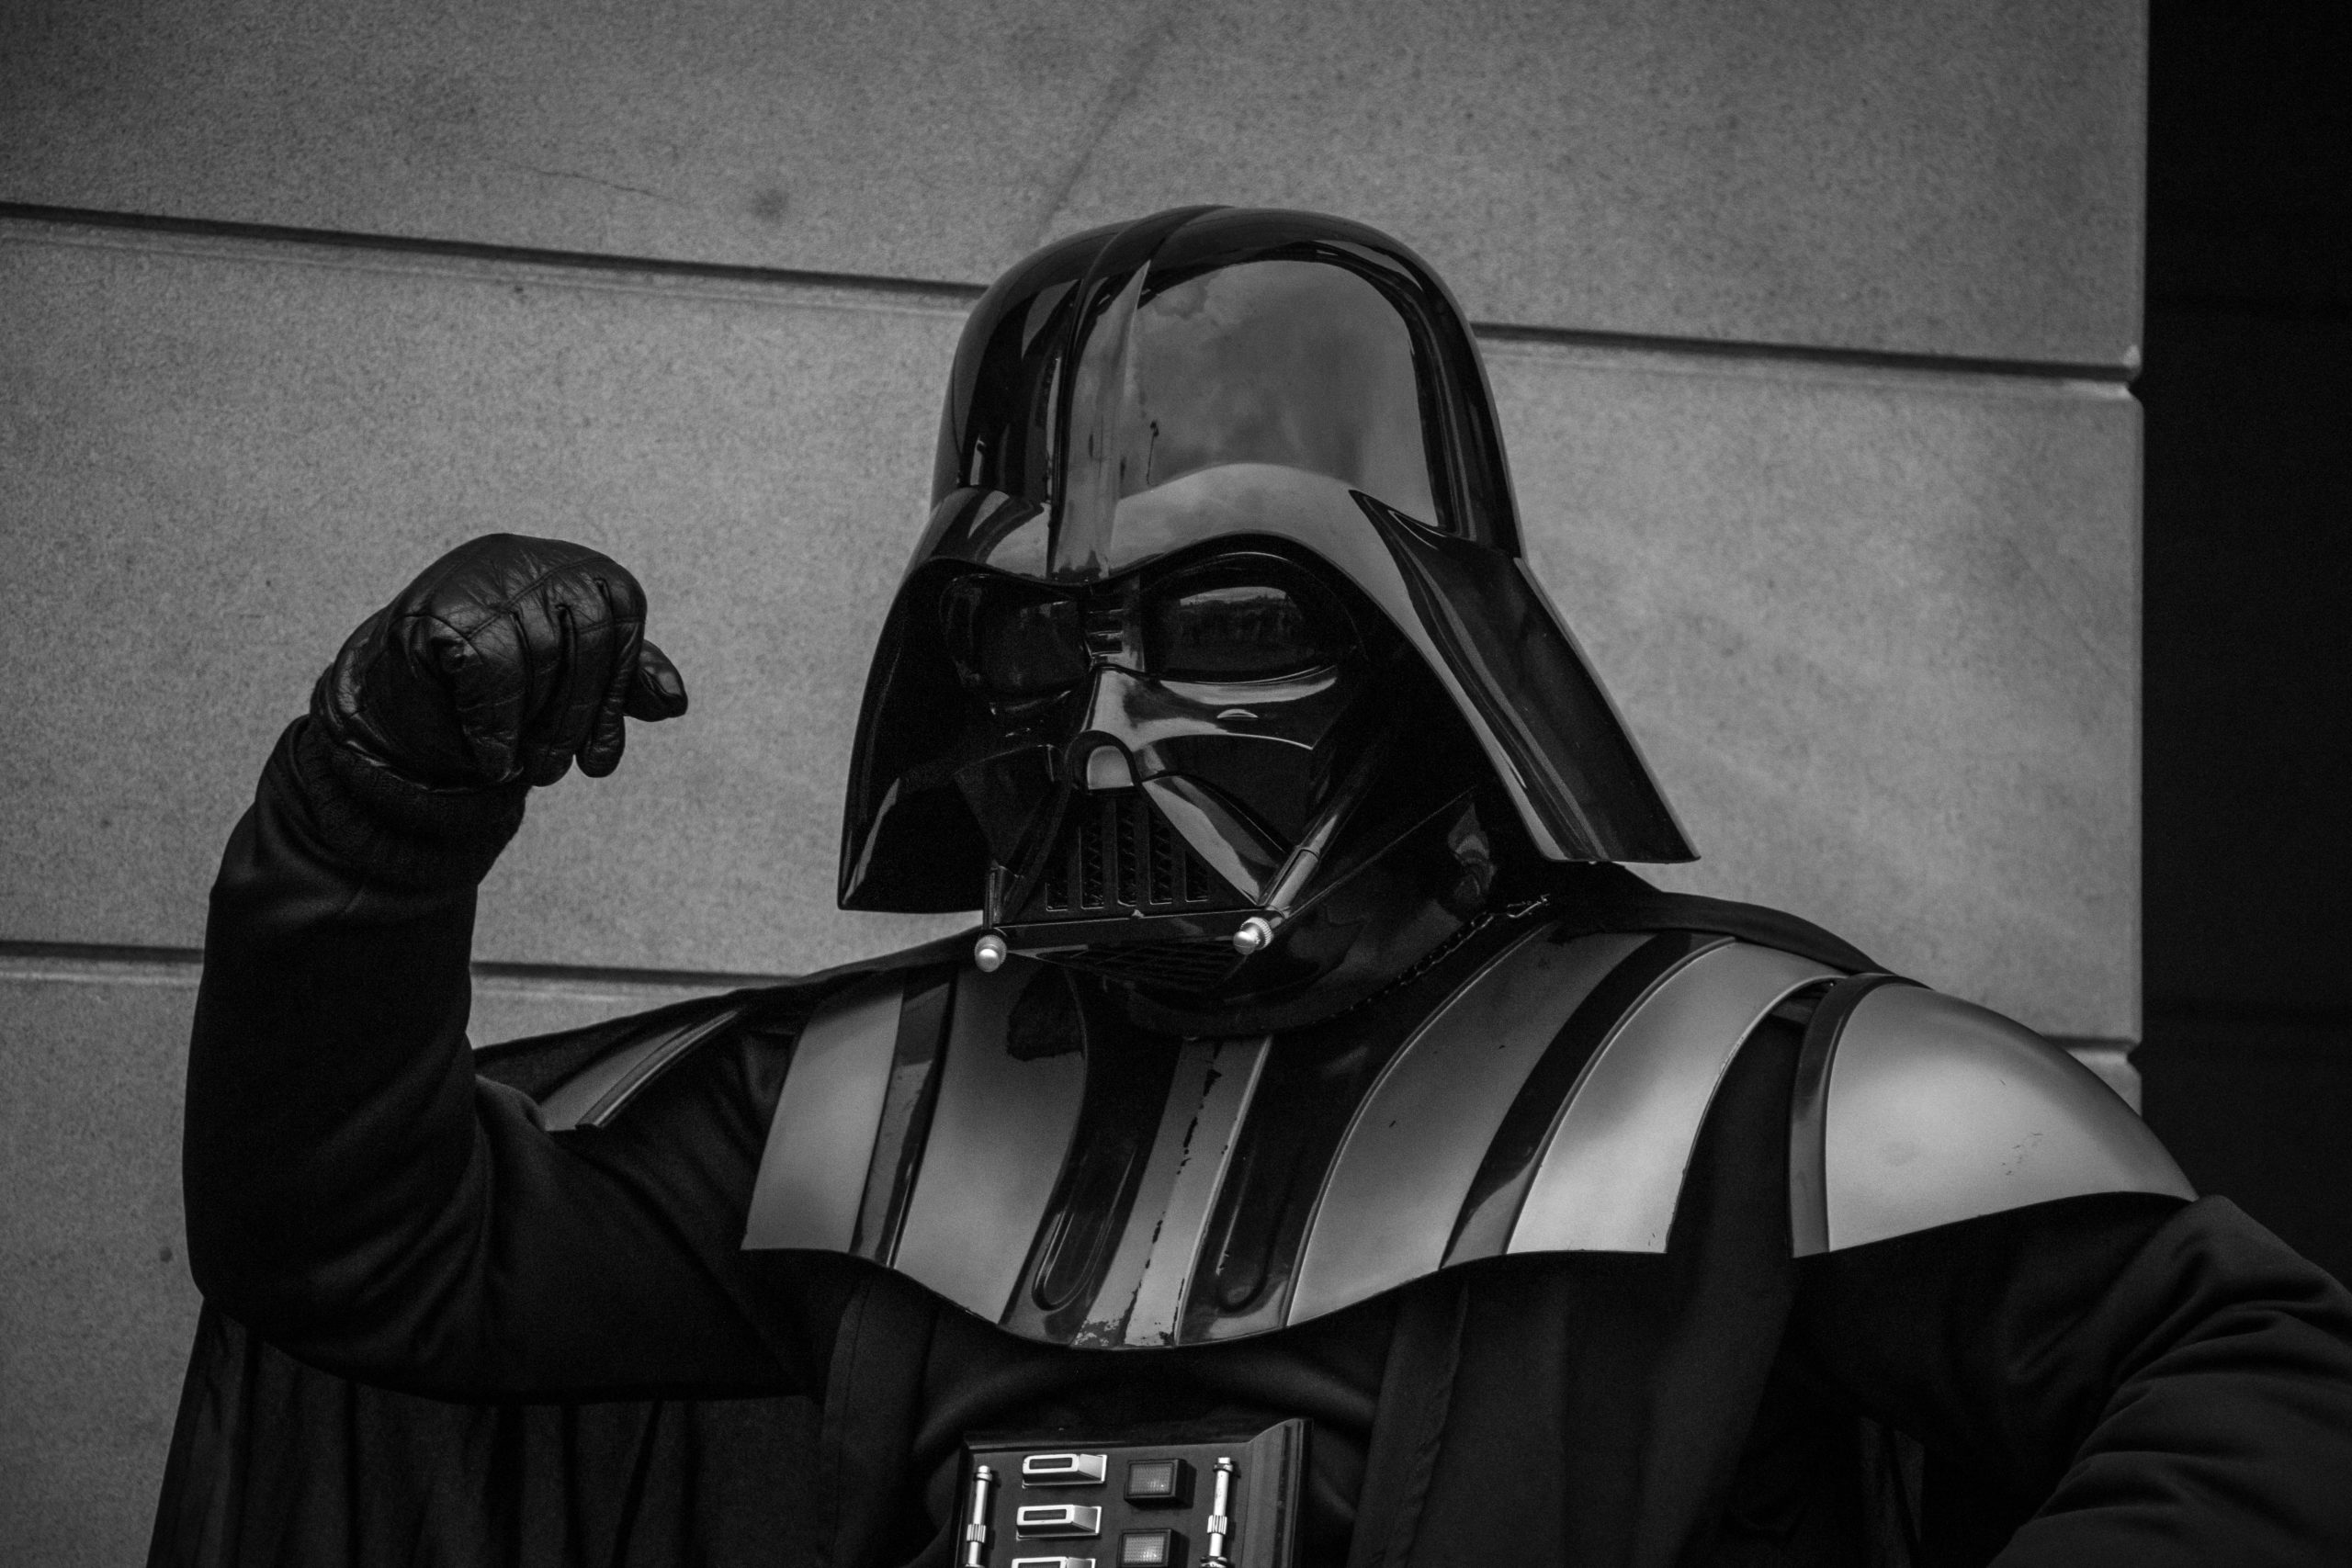 Data Breach: Do not underestimate the power of the Dark Side